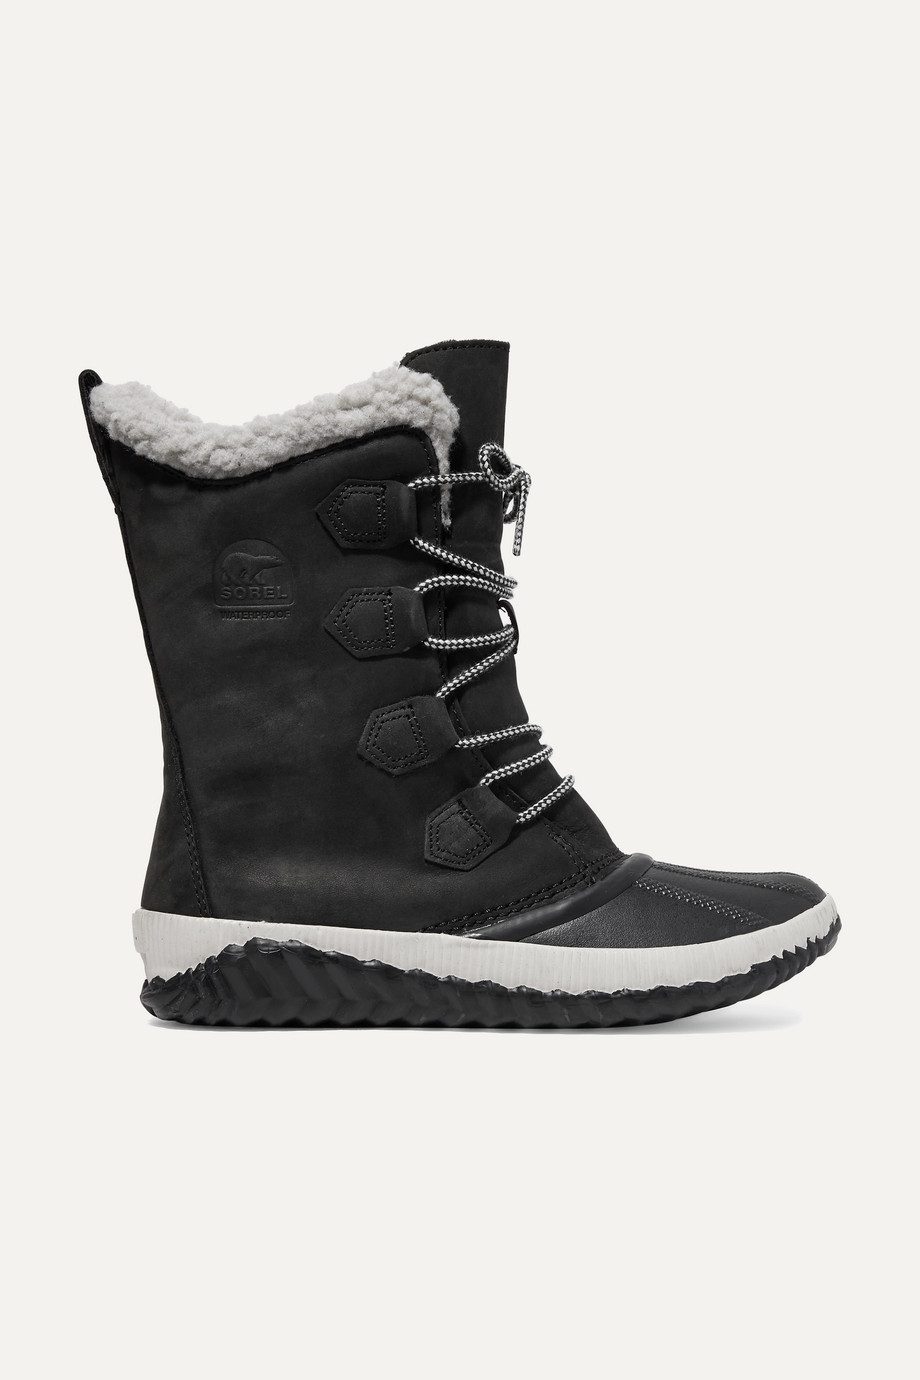 Sorel Out 'N About™ Plus leather and suede boots